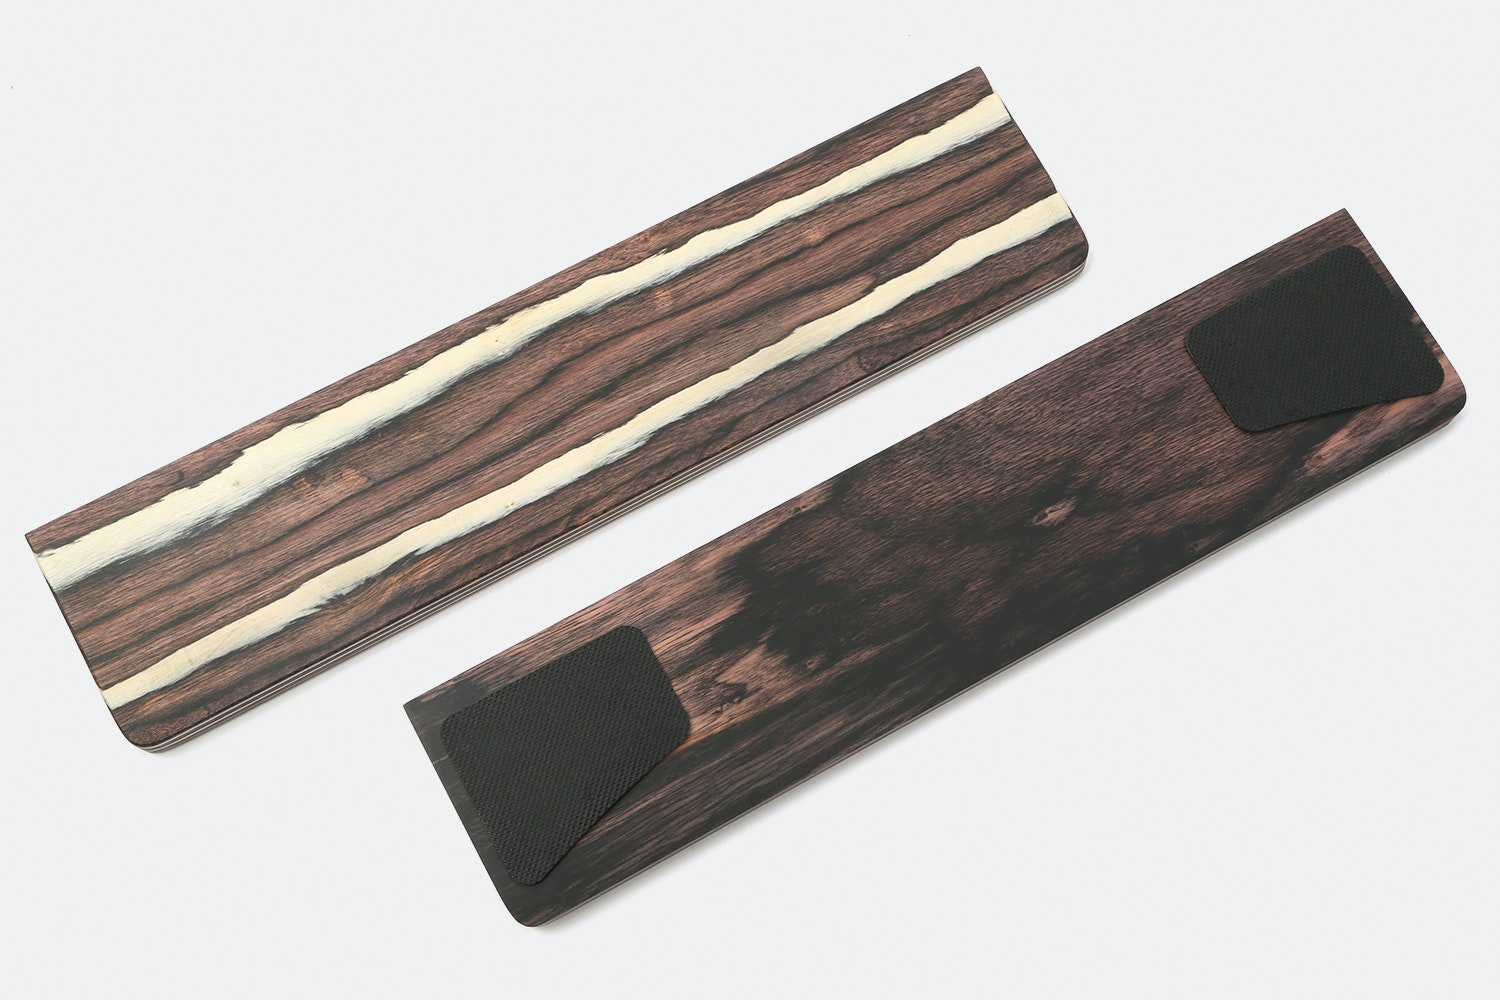 Royal Glam Colored Wood Wrist Rest